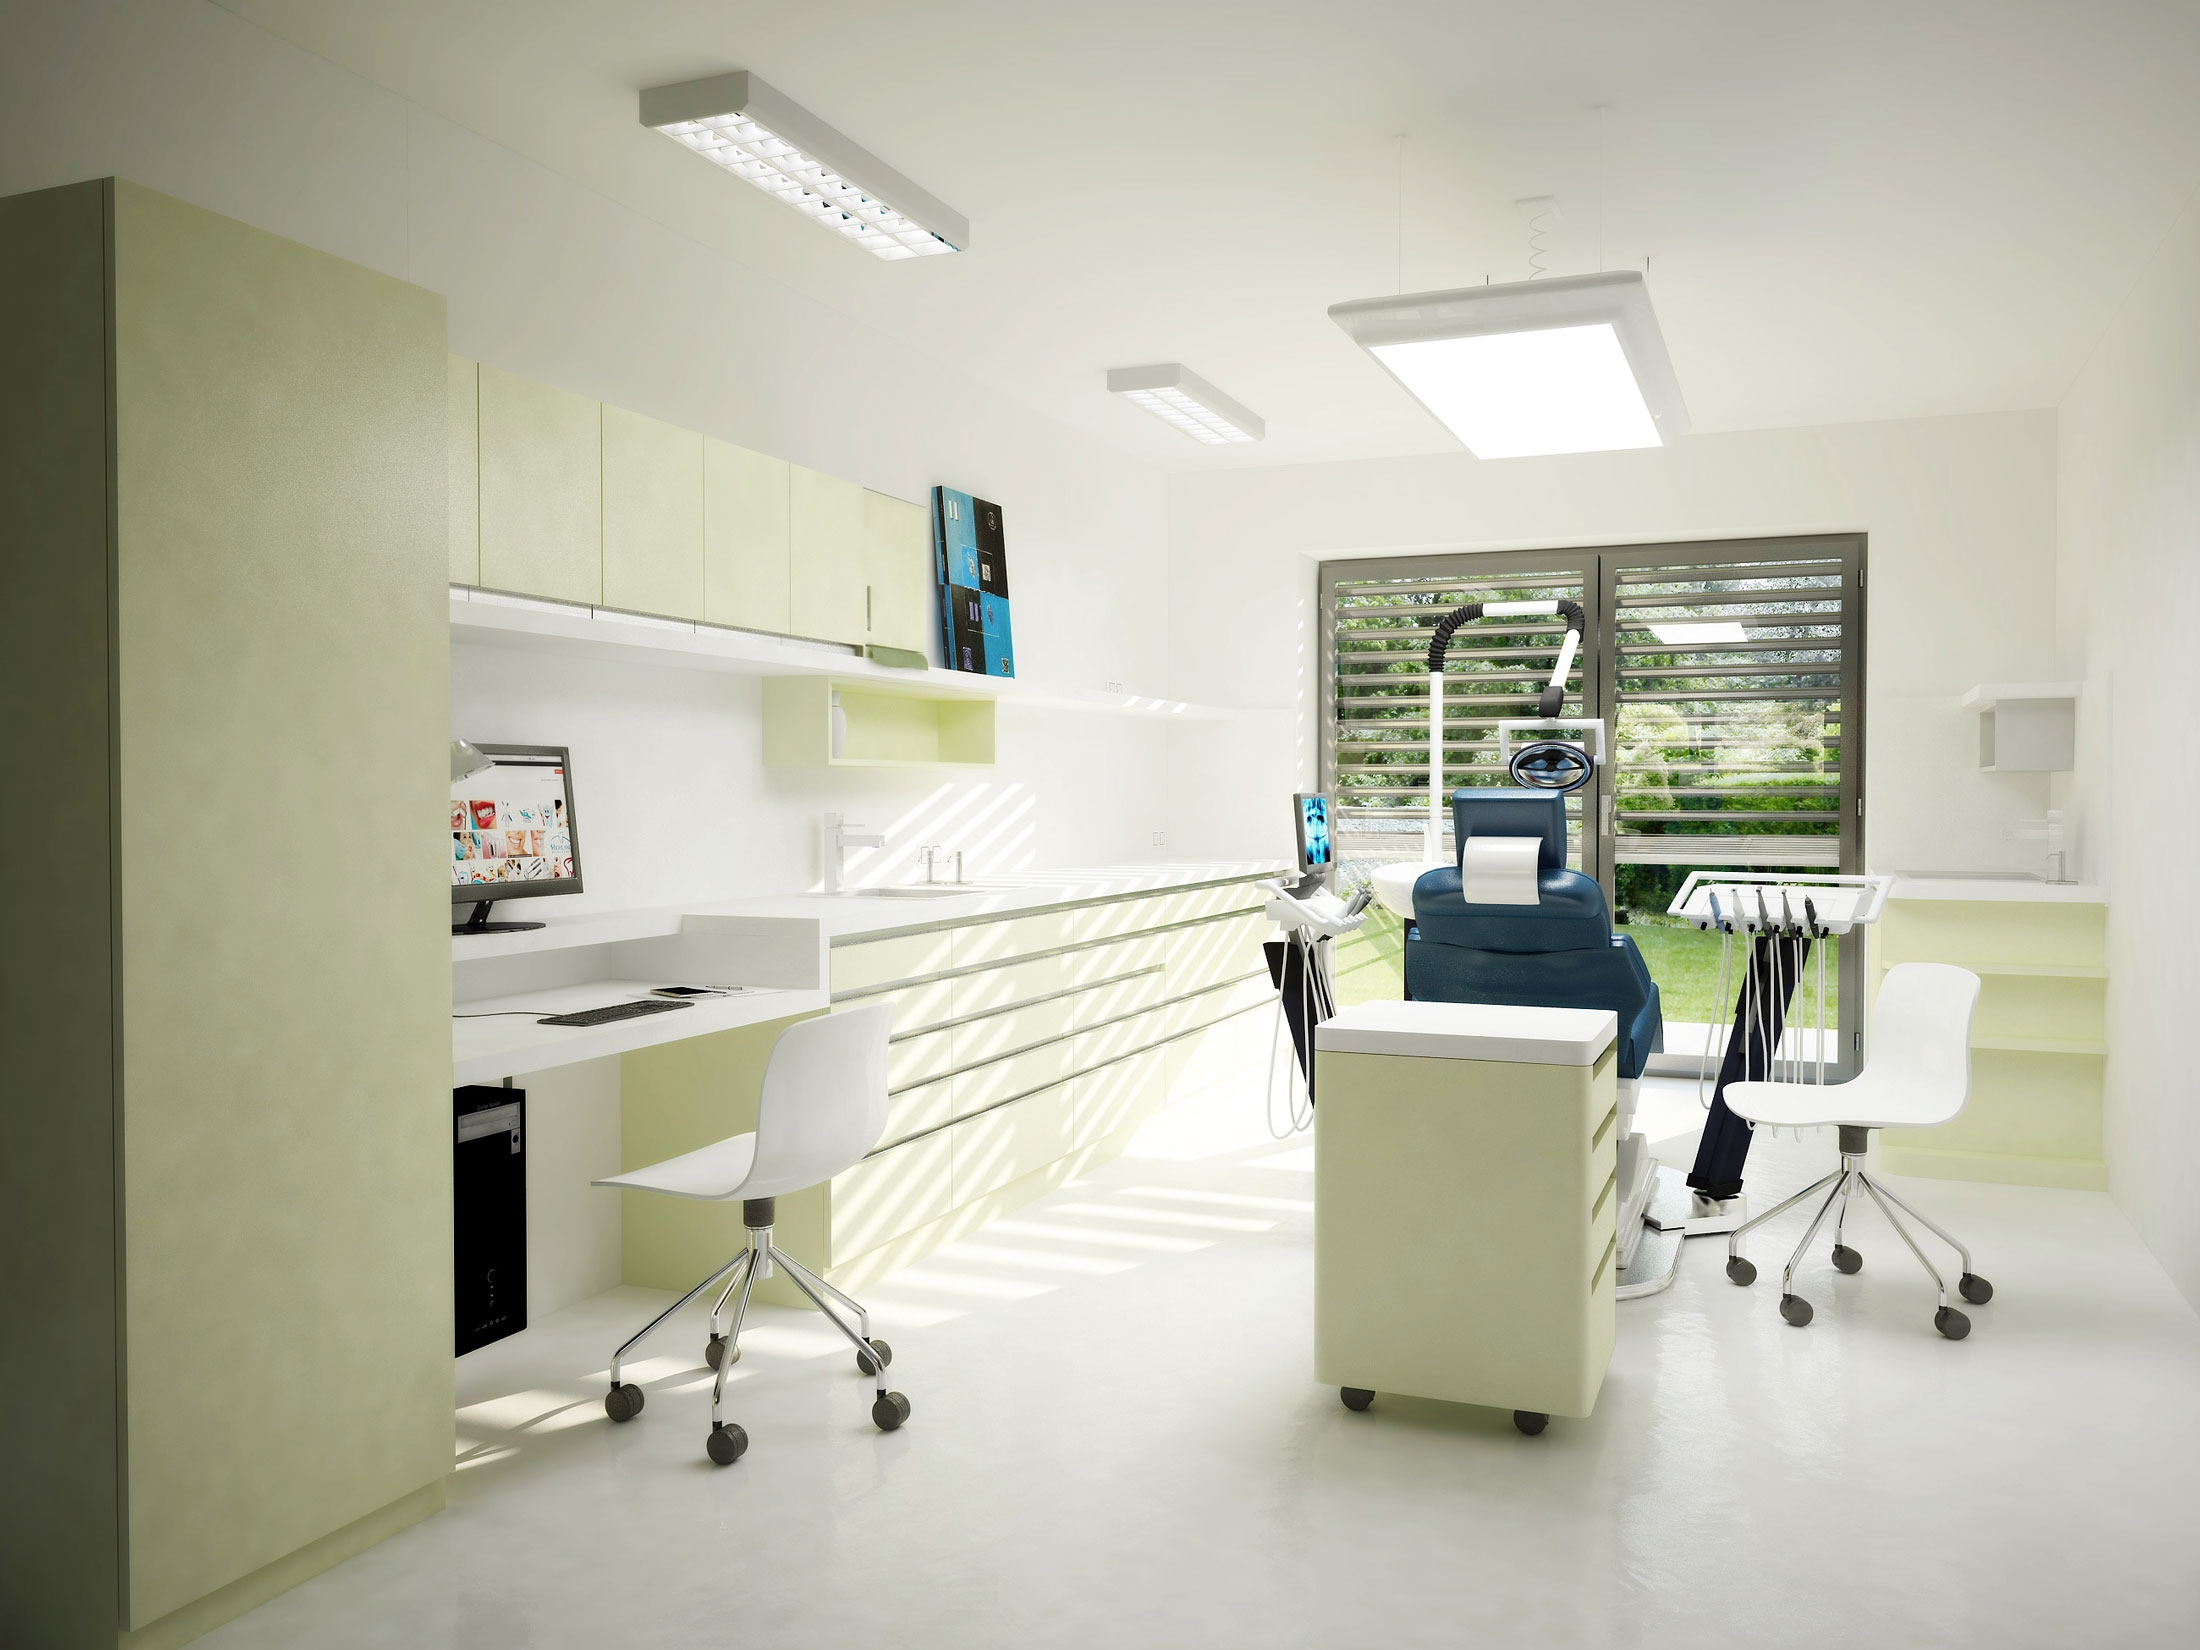 dental office interior. Dental Office Interior